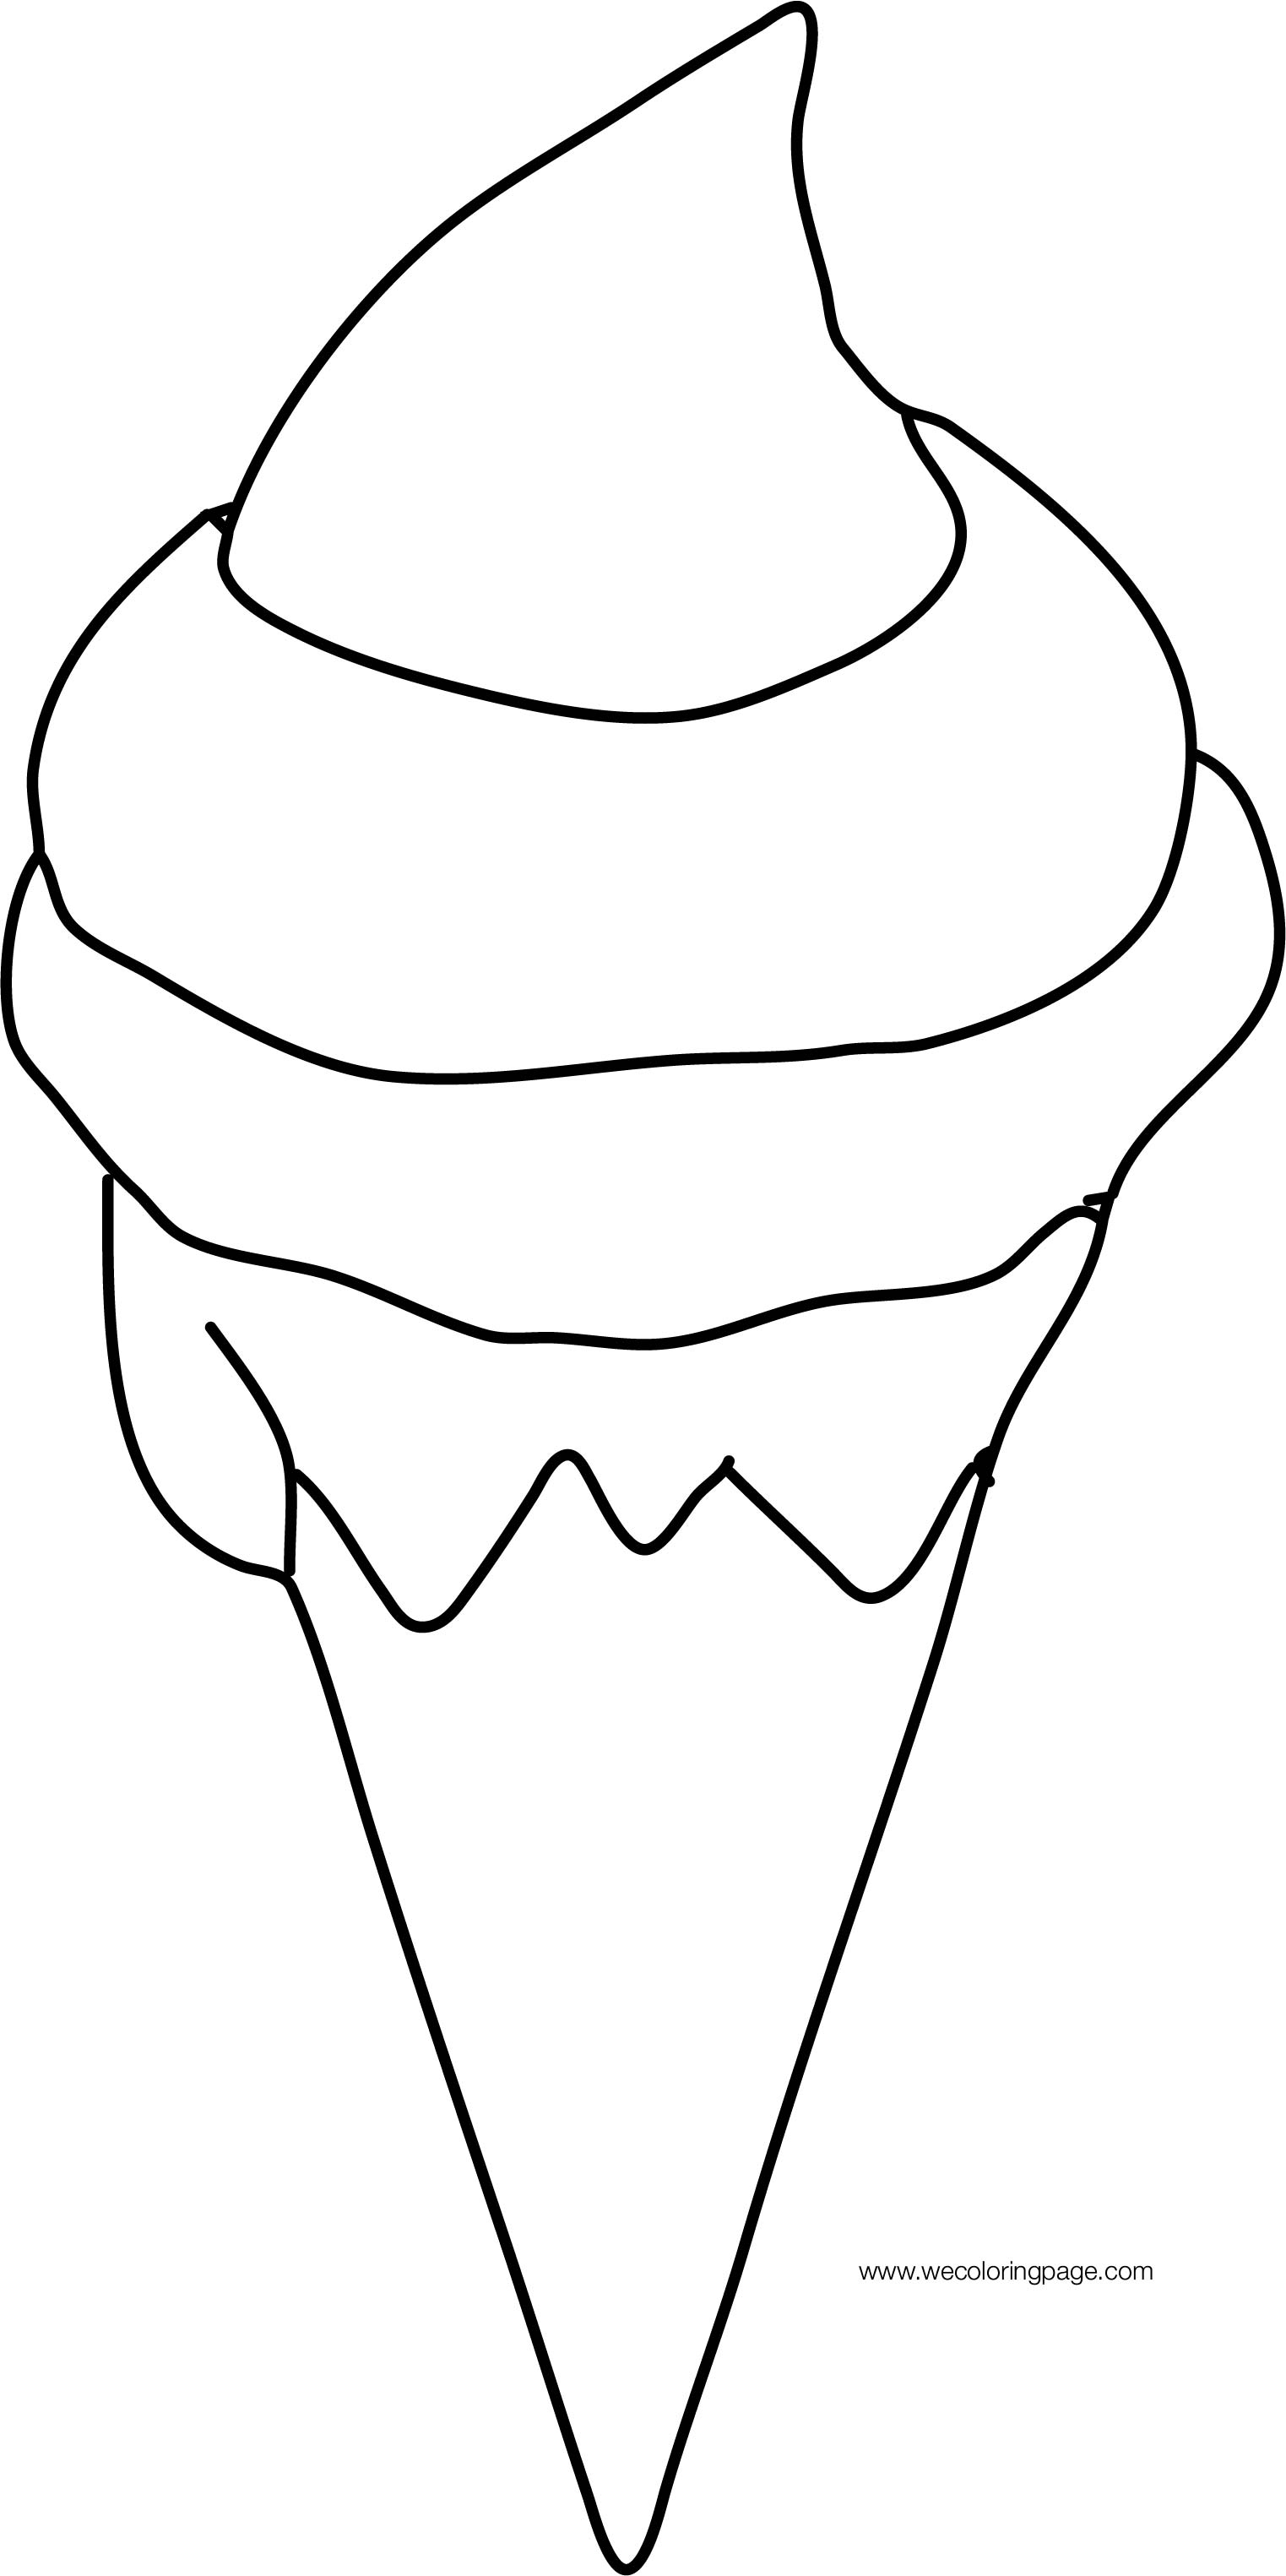 Ice Cream Cornet Cartoon Coloring Page For Kids